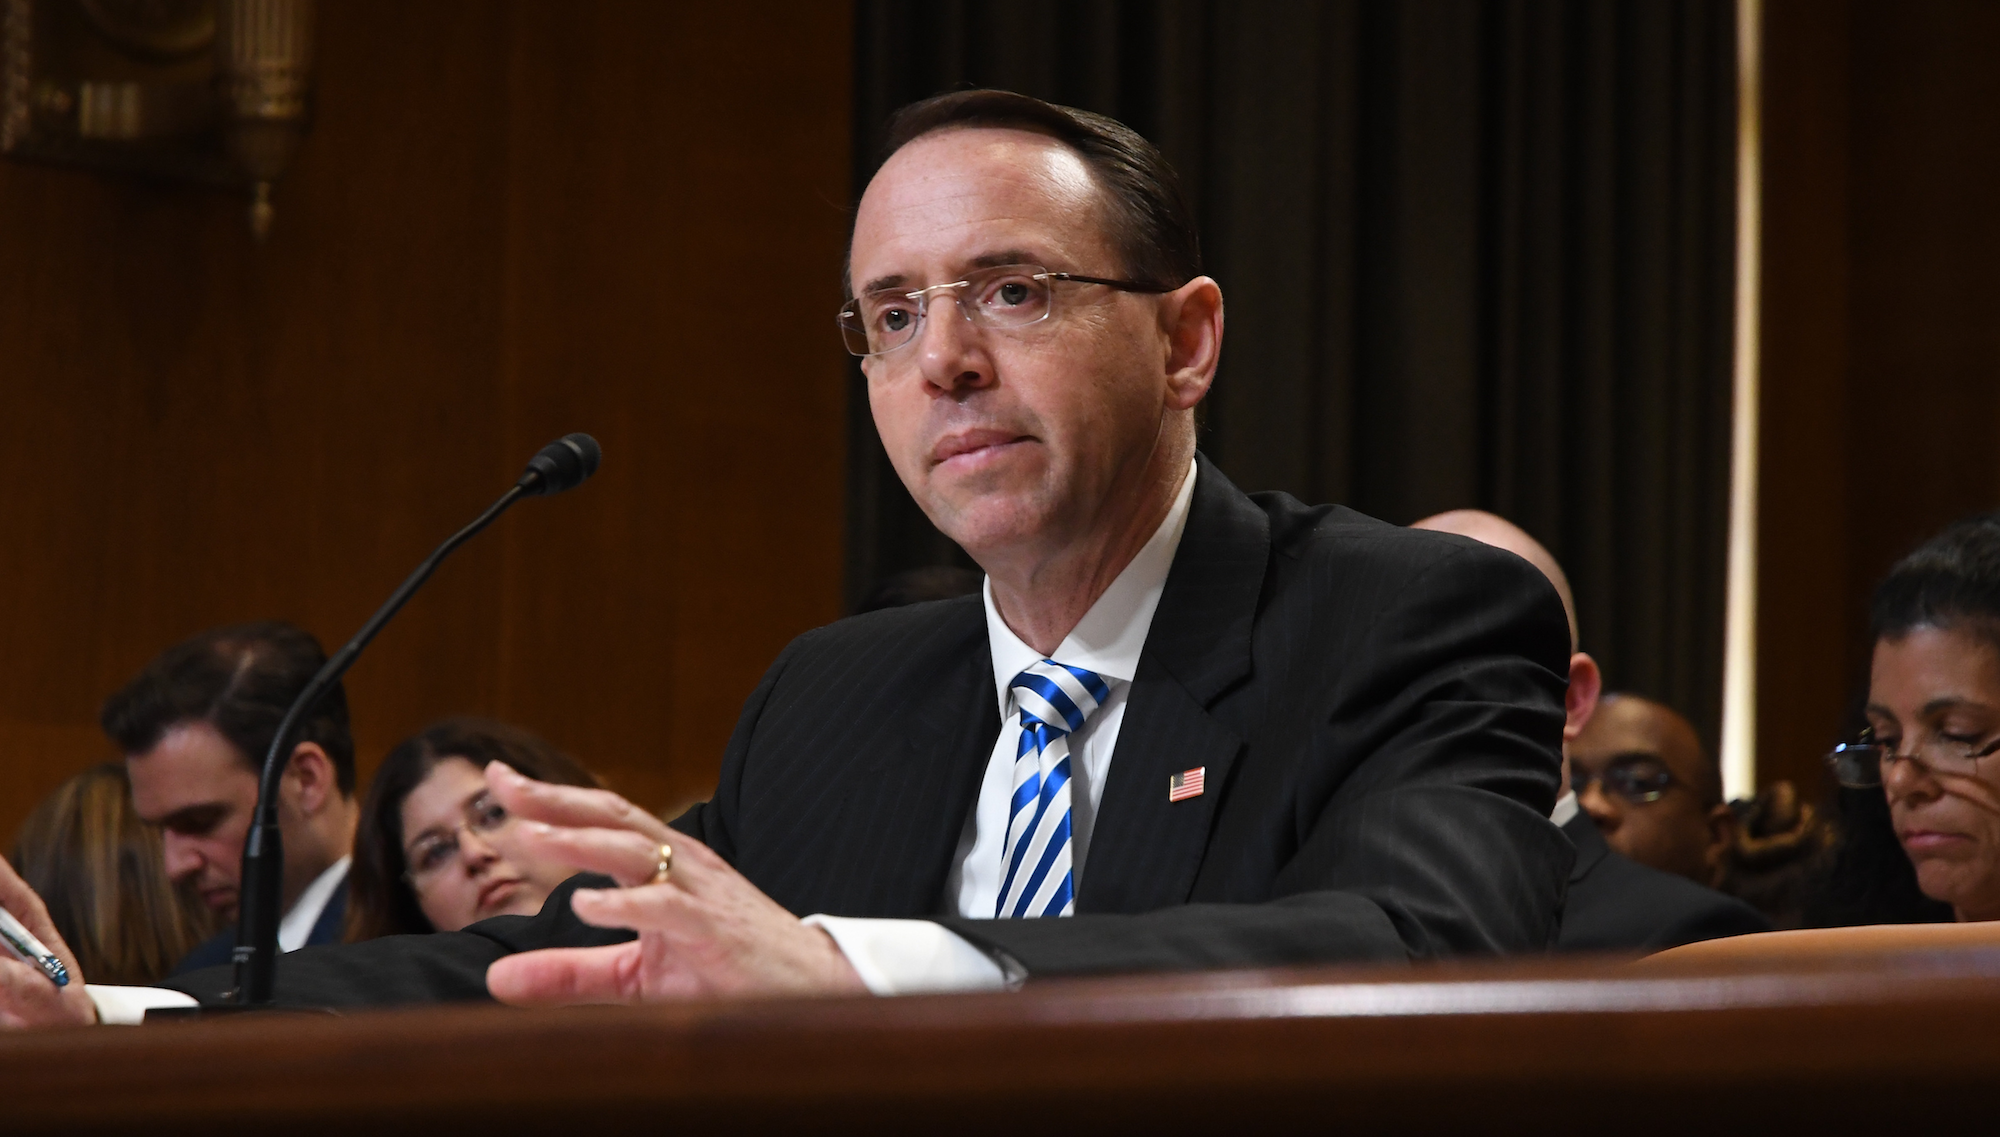 Deputy AG refuses to say if Federal Bureau of Investigation paid for anti-Trump dossier